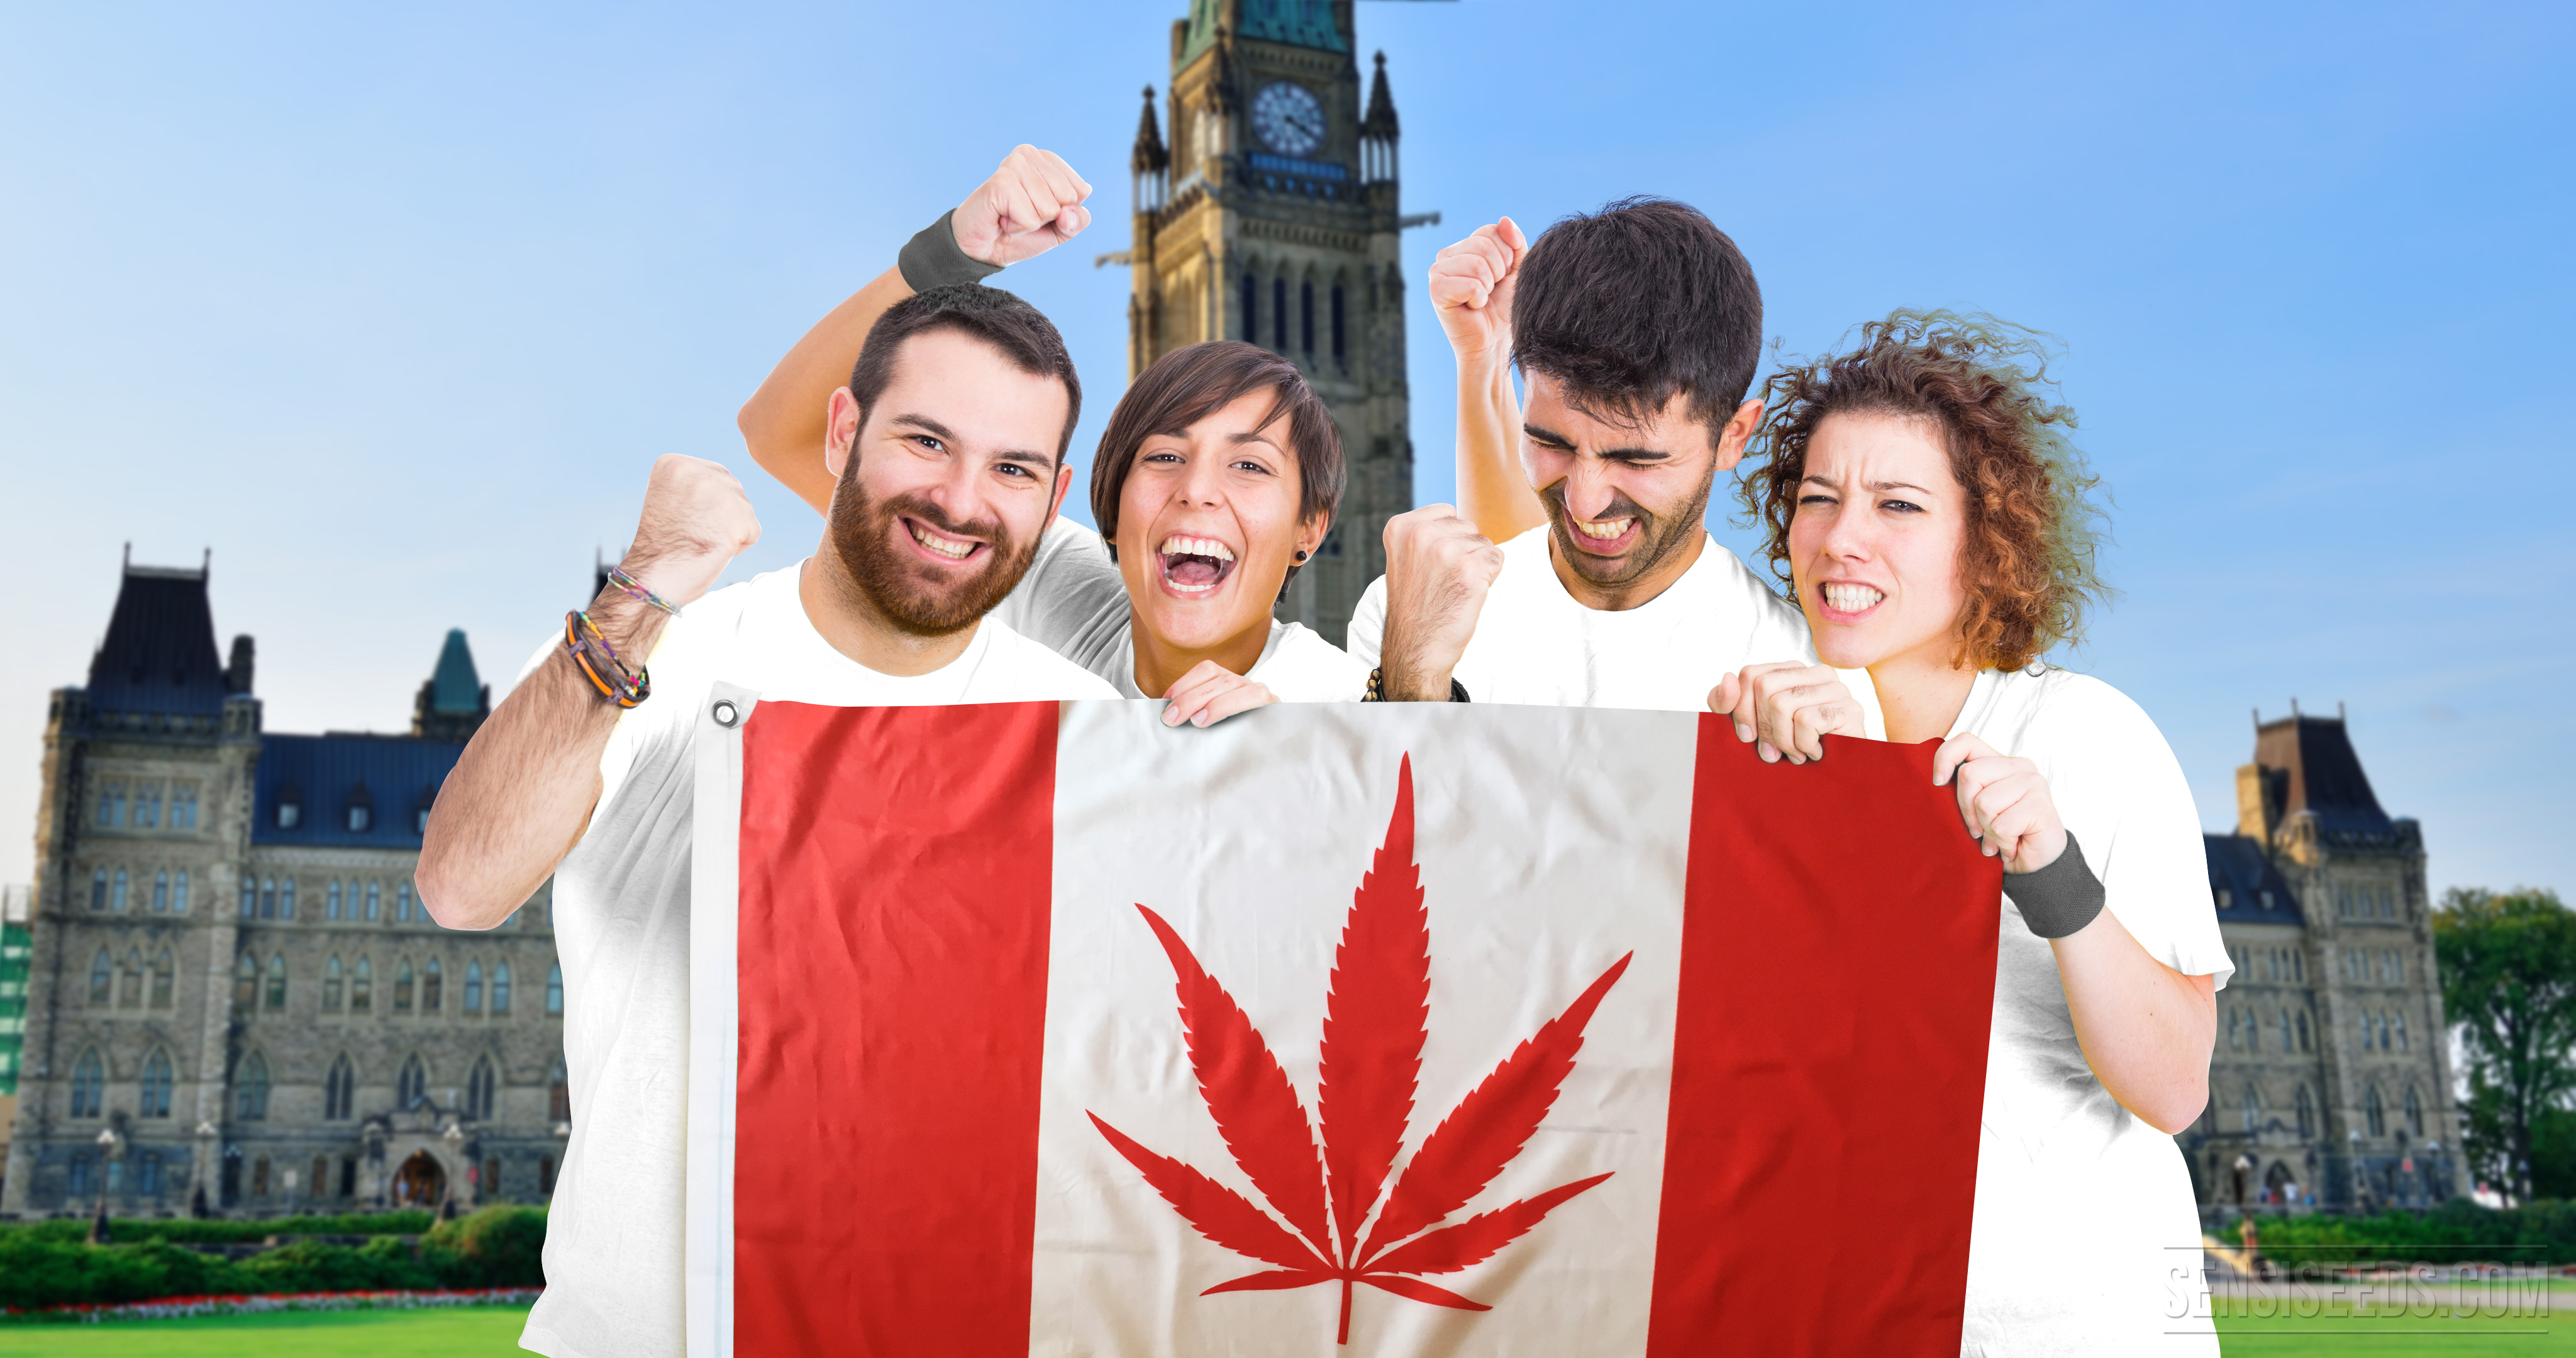 NEWSFLASH: Canada announces project to legalize recreational